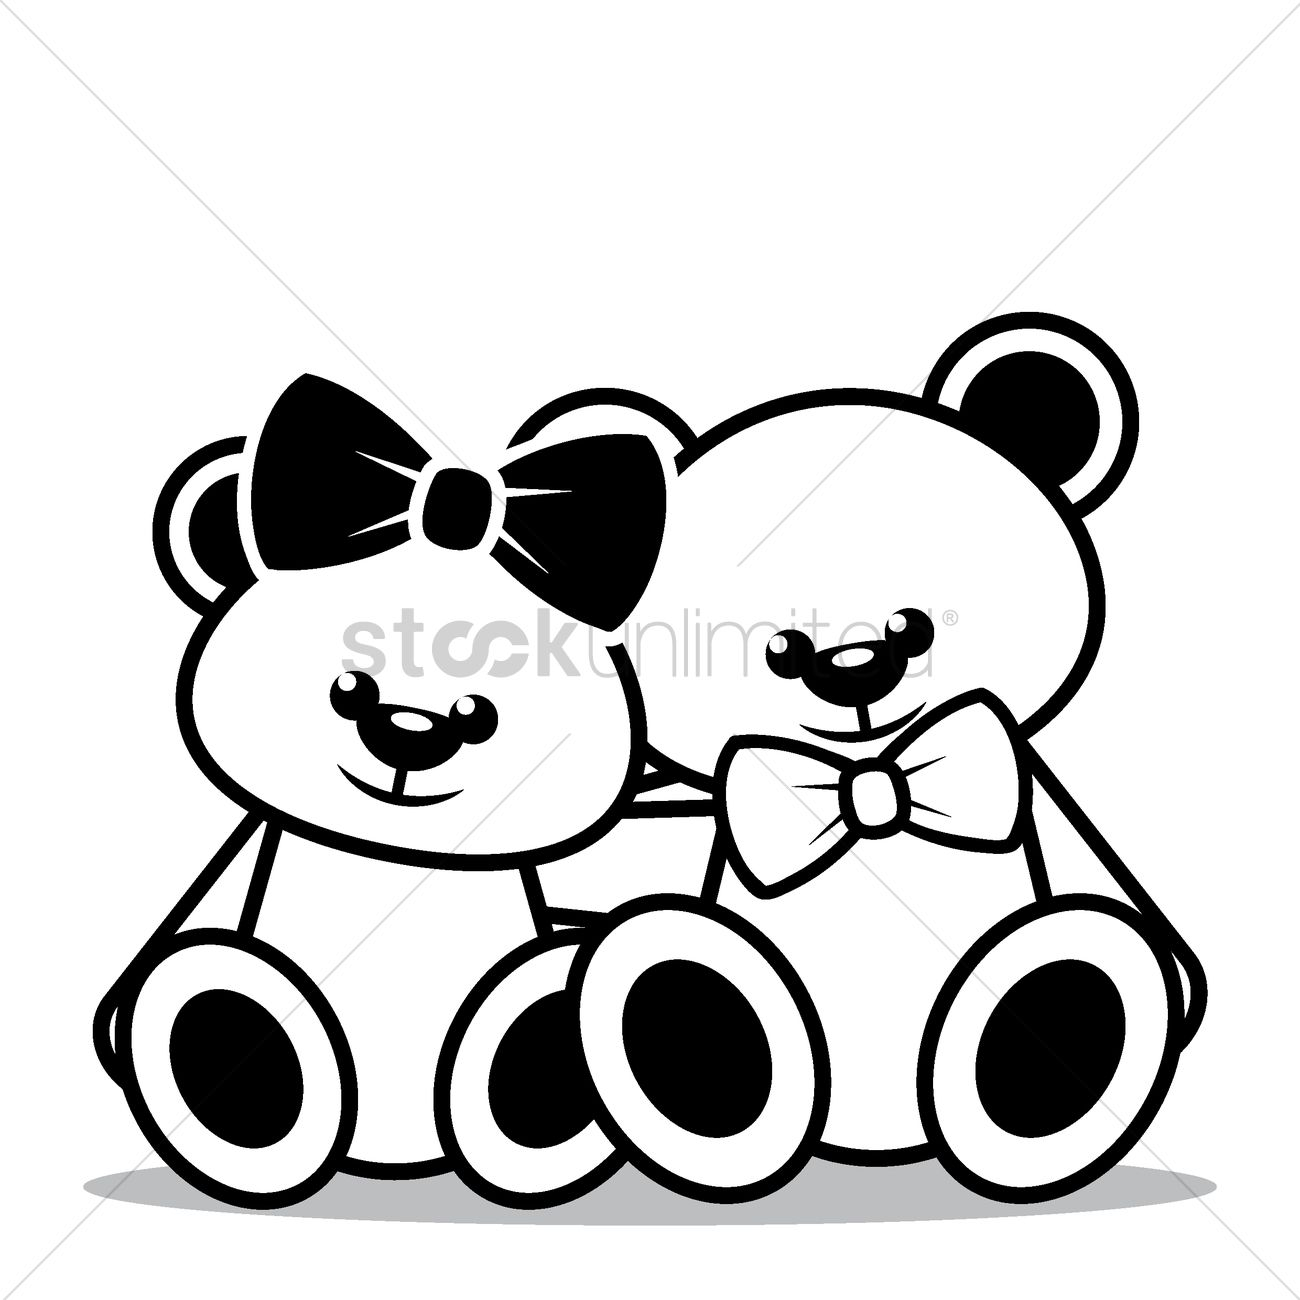 Teddy bears sitting together Vector Image  1504371  StockUnlimited